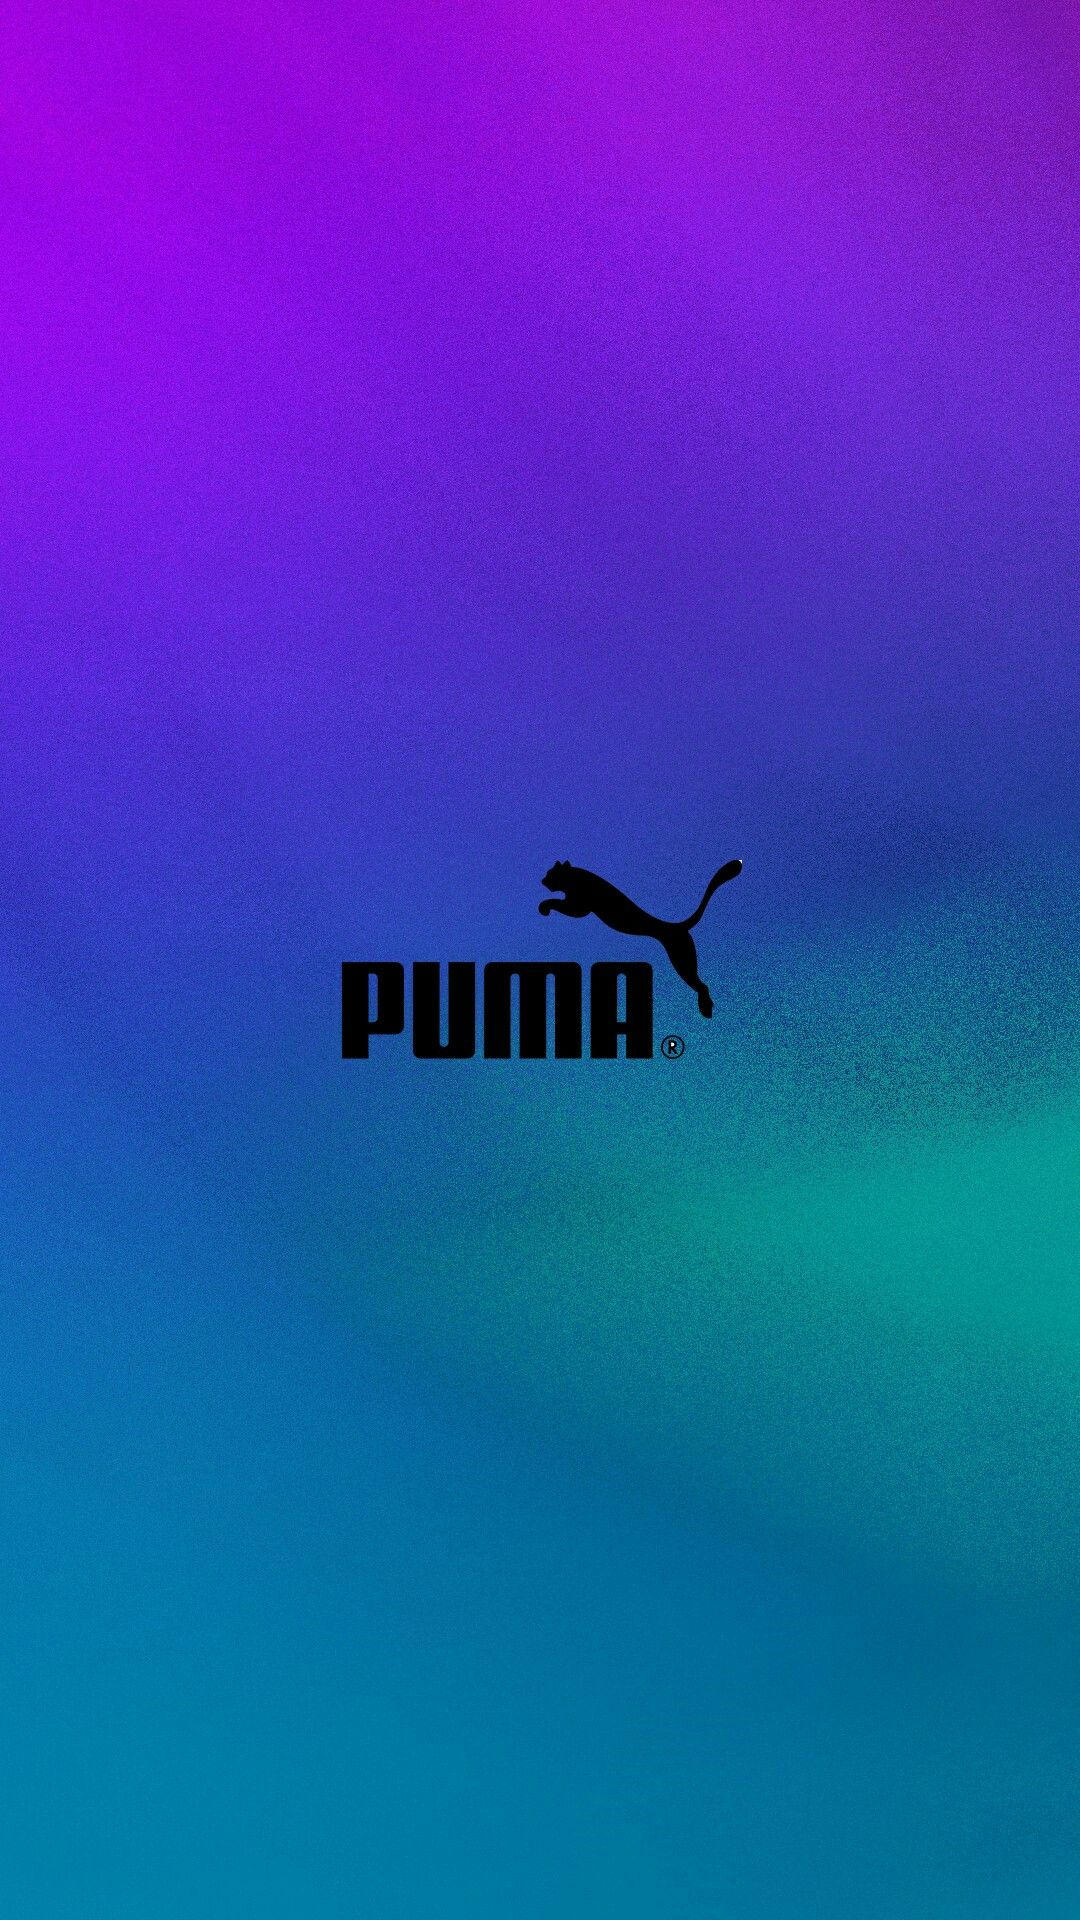 Pin by Nicole Frohloff on Puma Wallpaper in 2019 ...